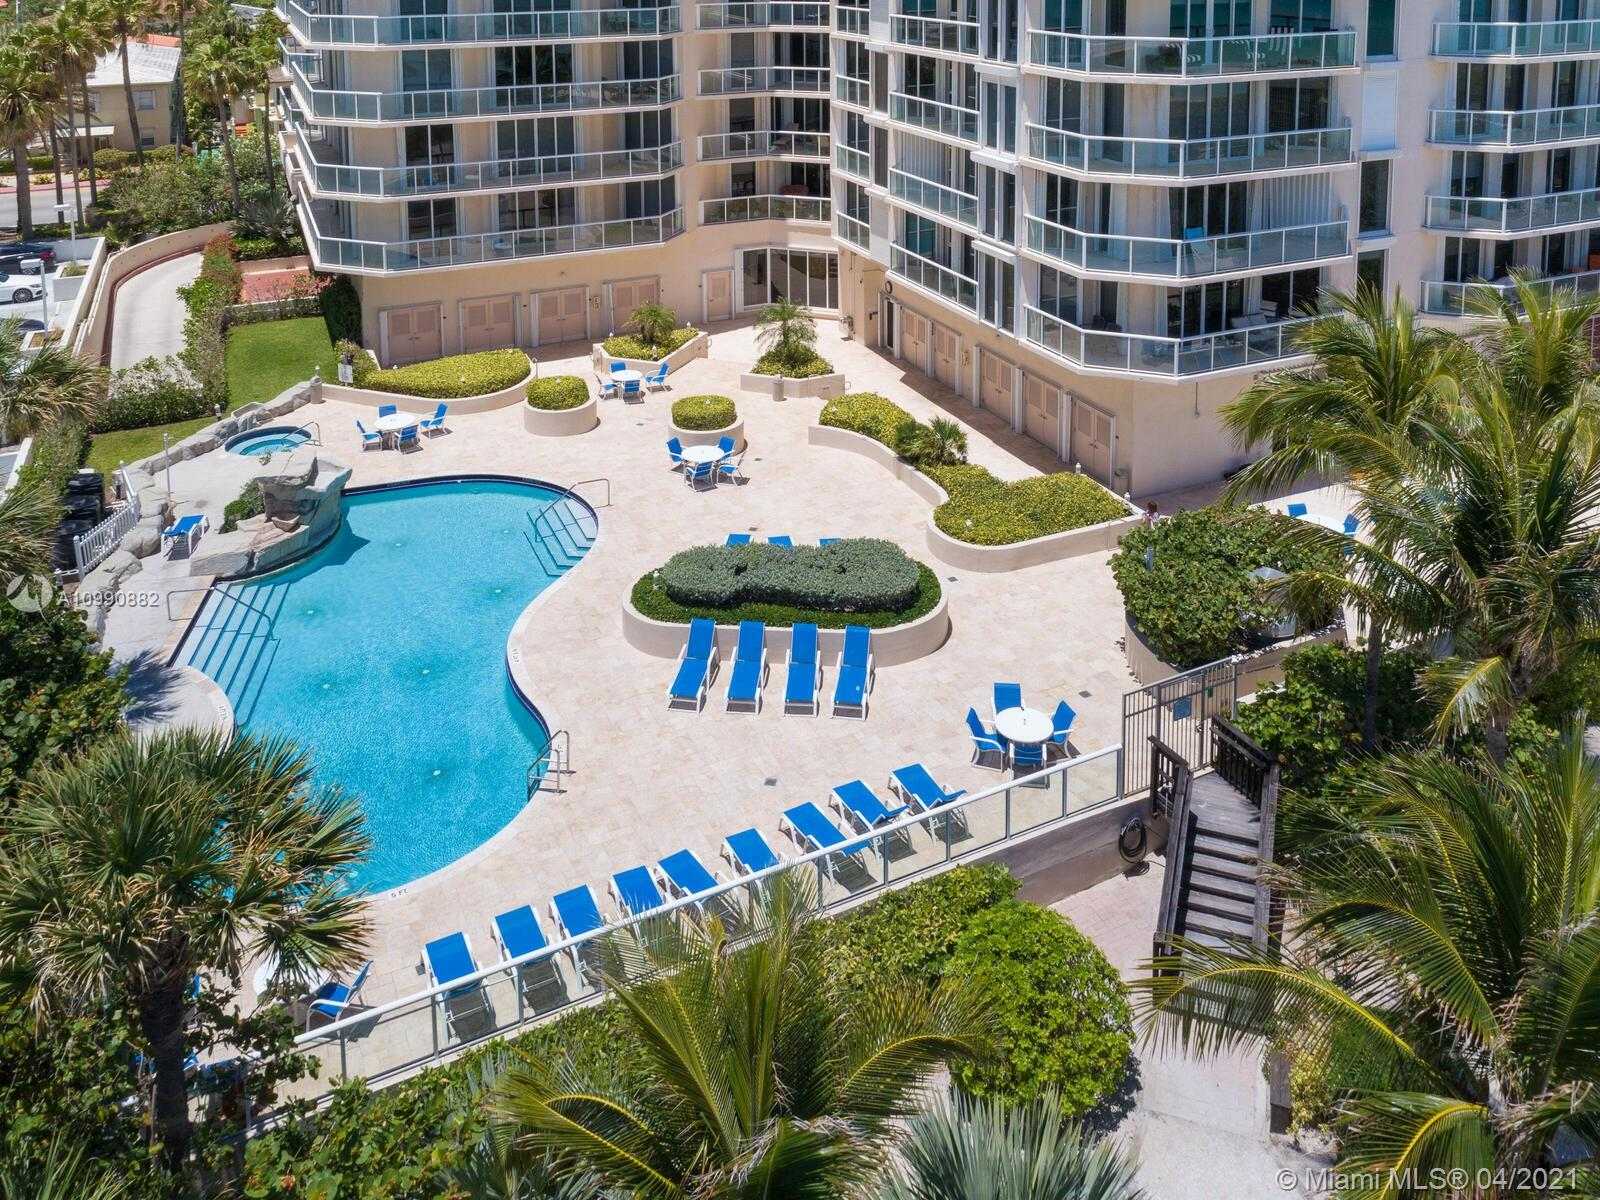 Photo of 8925 Collins Ave #2H, Surfside, Florida, 33154 - Pool prior to renovation.